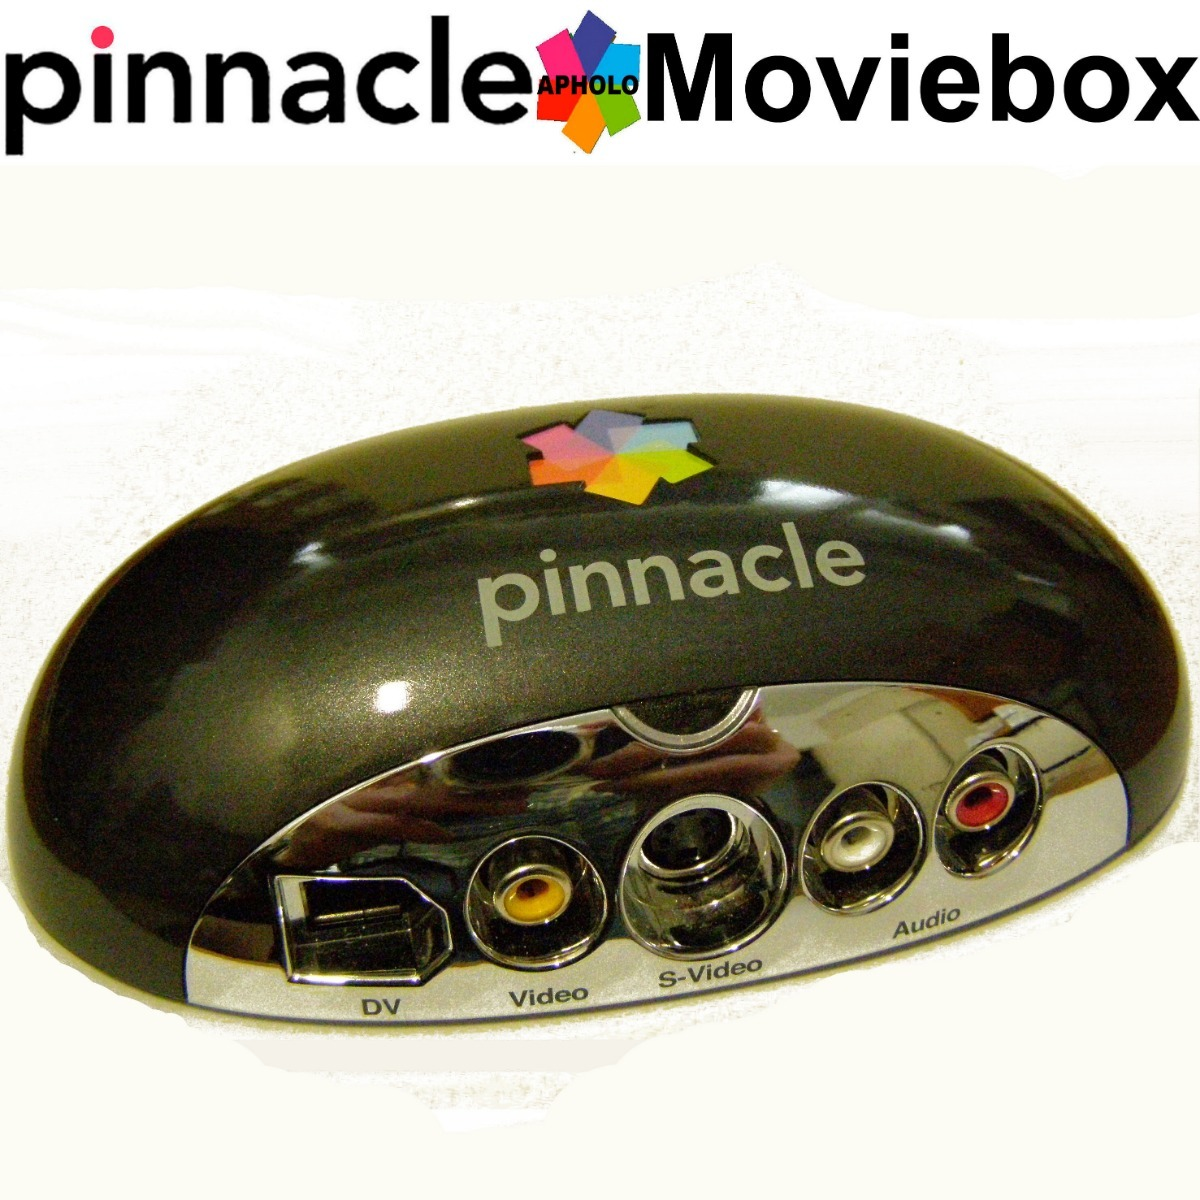 PINNACLE MOVIEBOX PLUS DRIVERS WINDOWS 7 (2019)